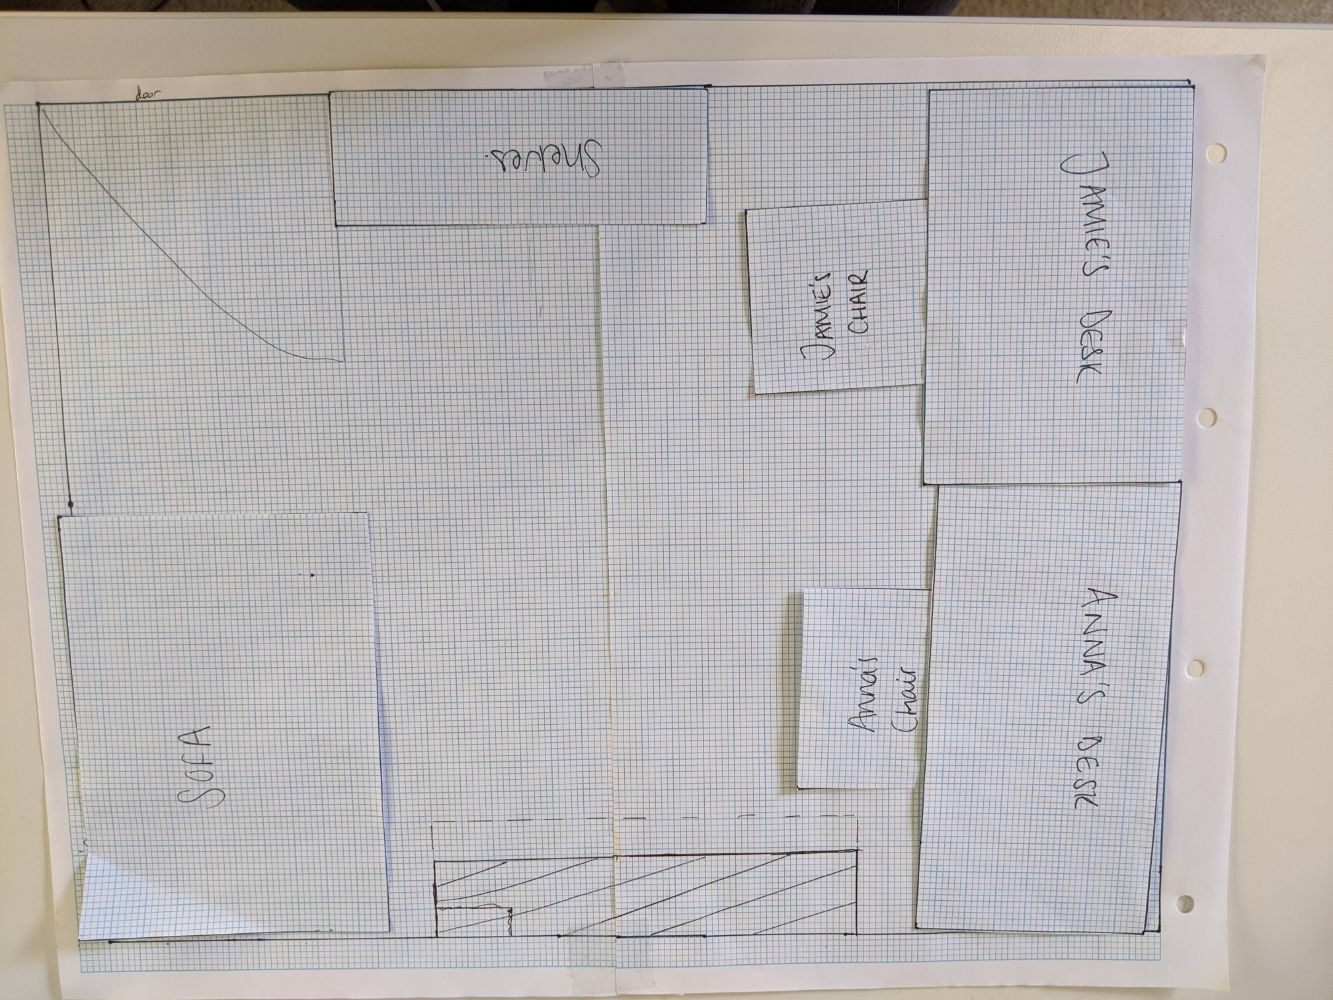 Floor plan of Jamie and Anna's desks right next to each other on one side of the room, with shelves behind Jamie and a sofa in the window